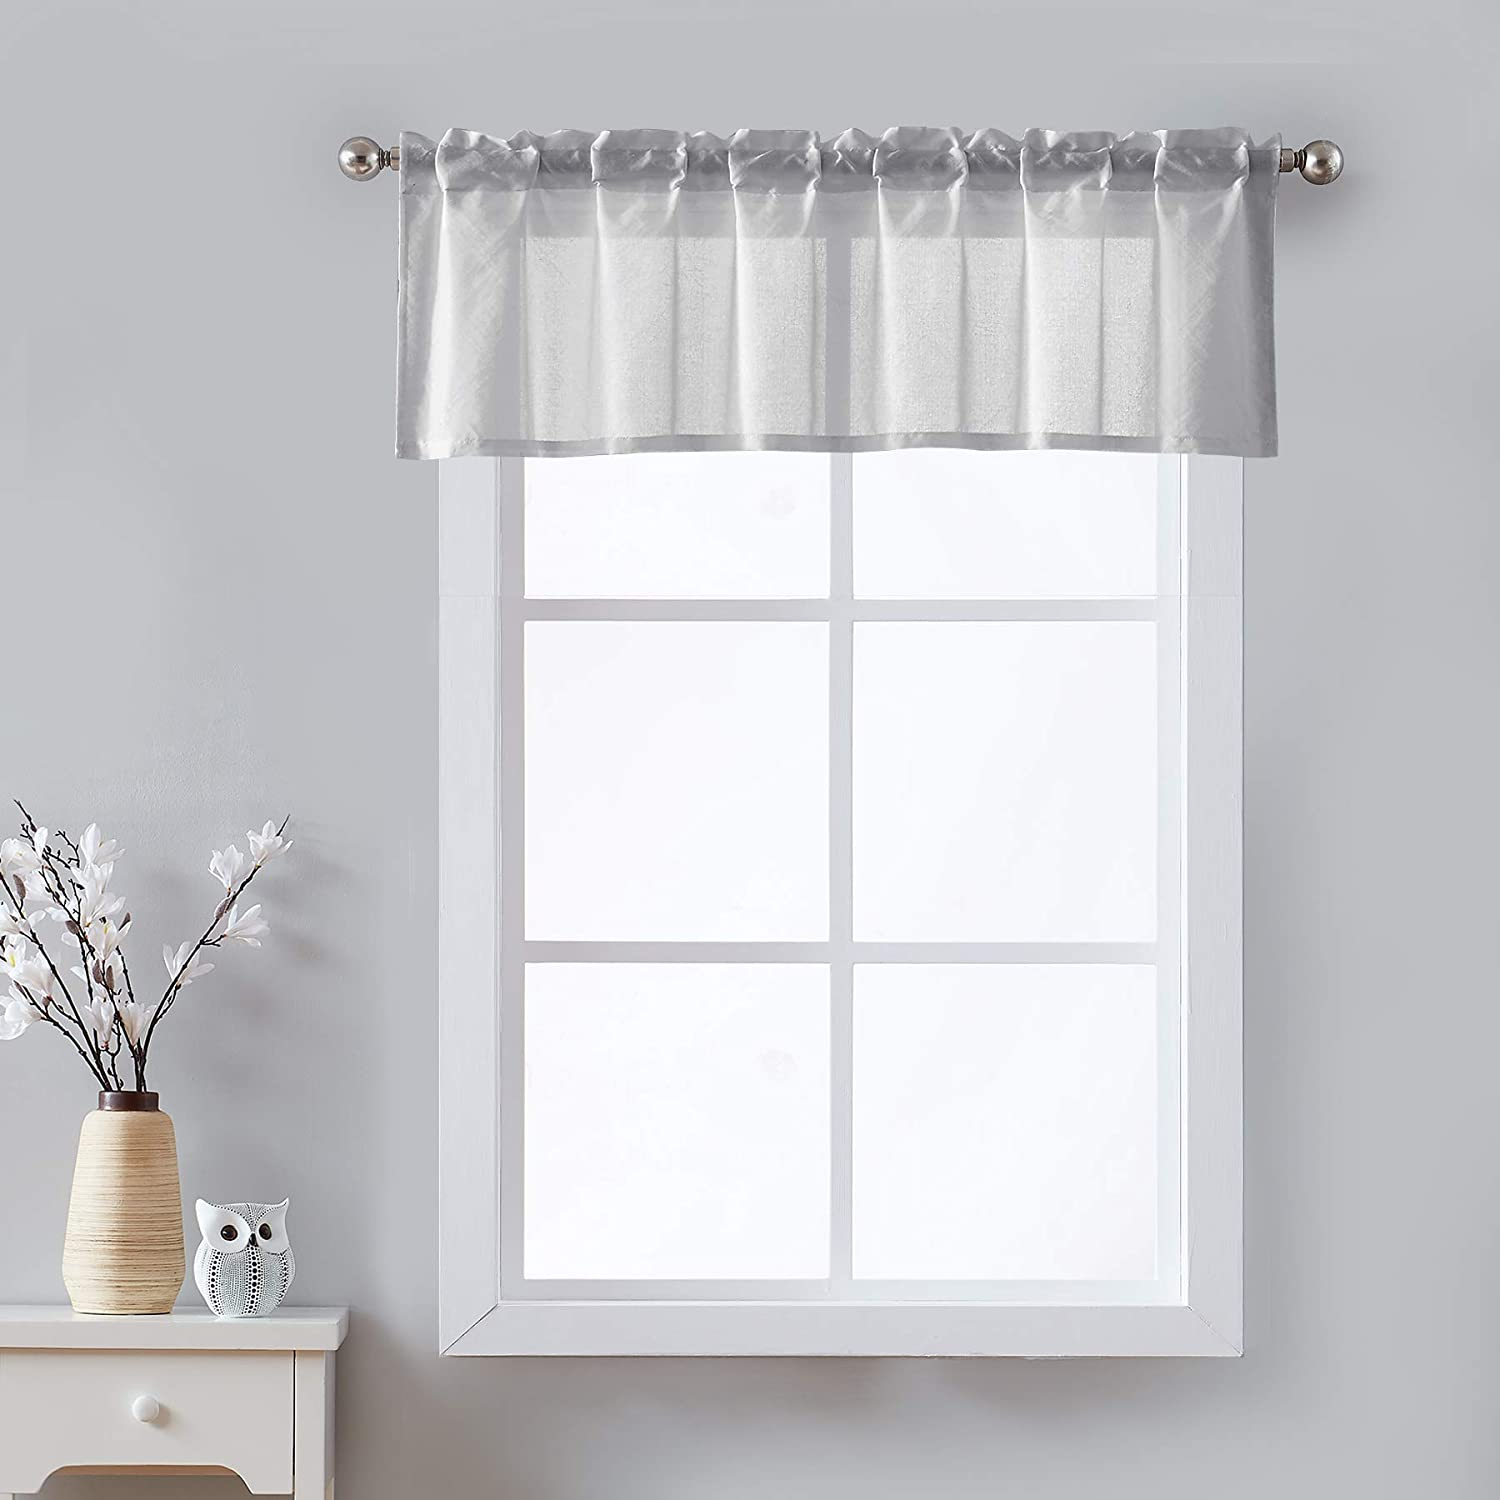 Sheer Grey Kitchen Curtains Valances for Windows Top Solid Short Bathroom  Curtains 122